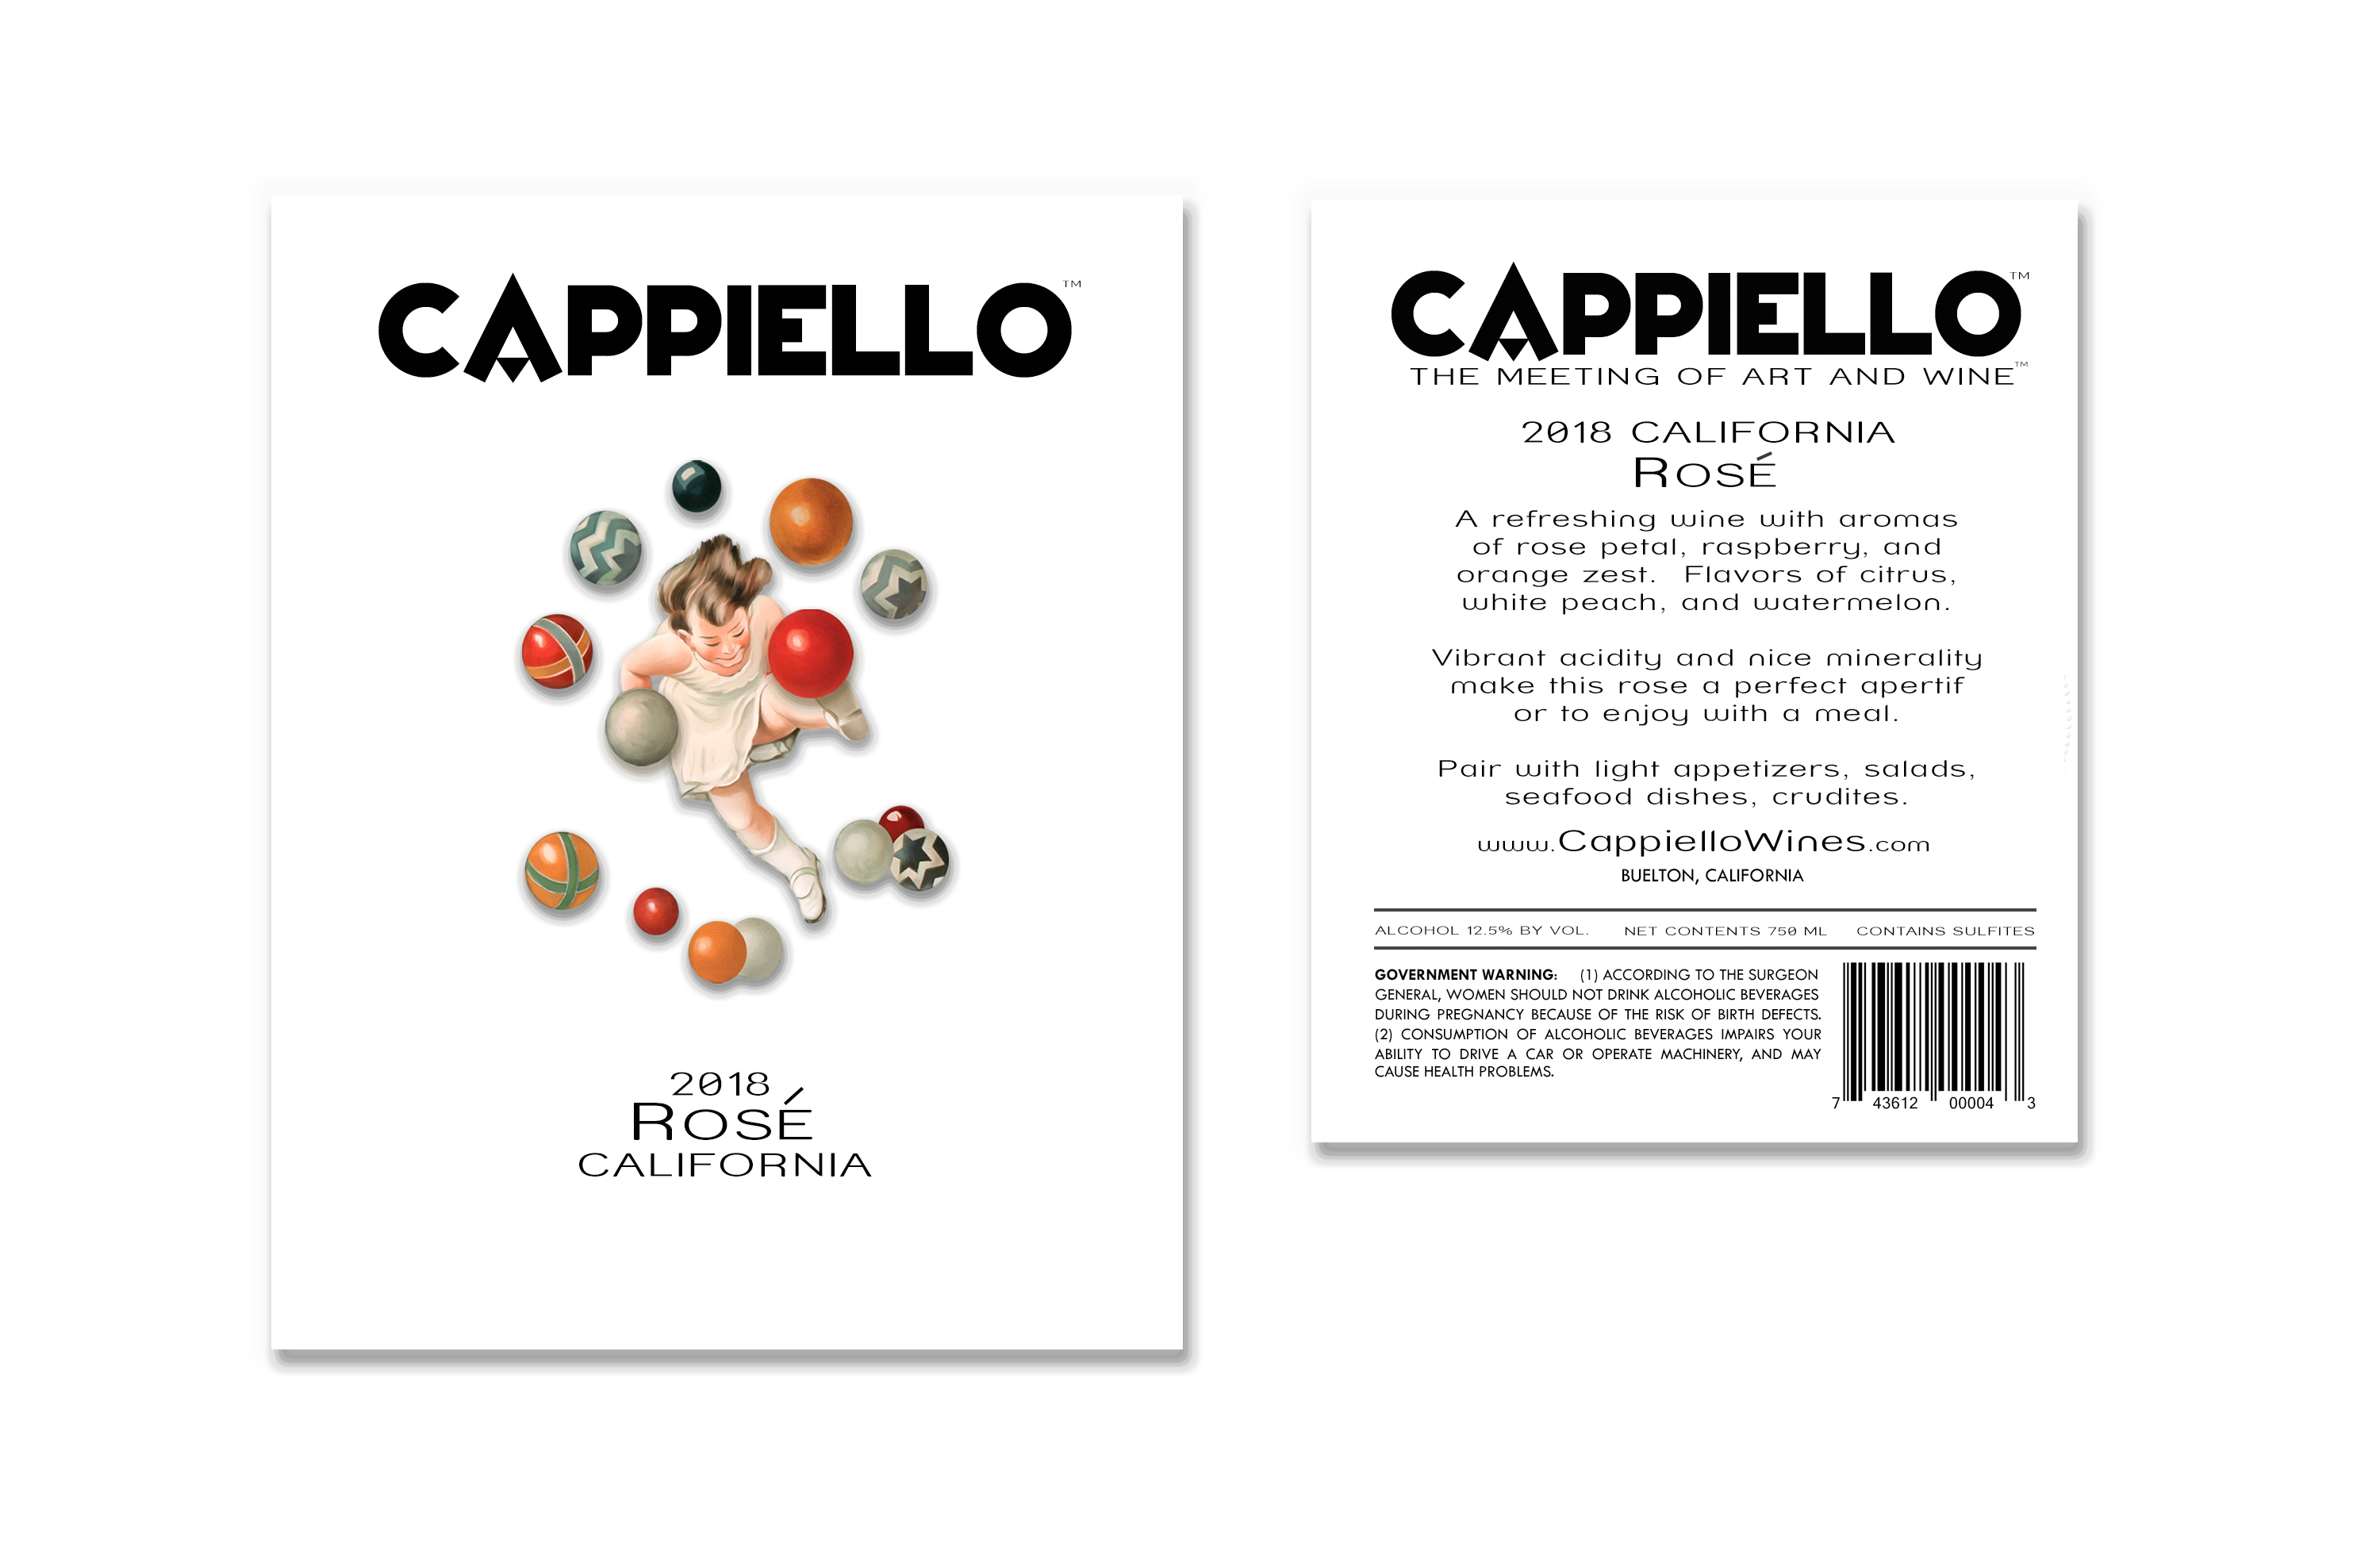 Cappiello Wines 2018 California Rose